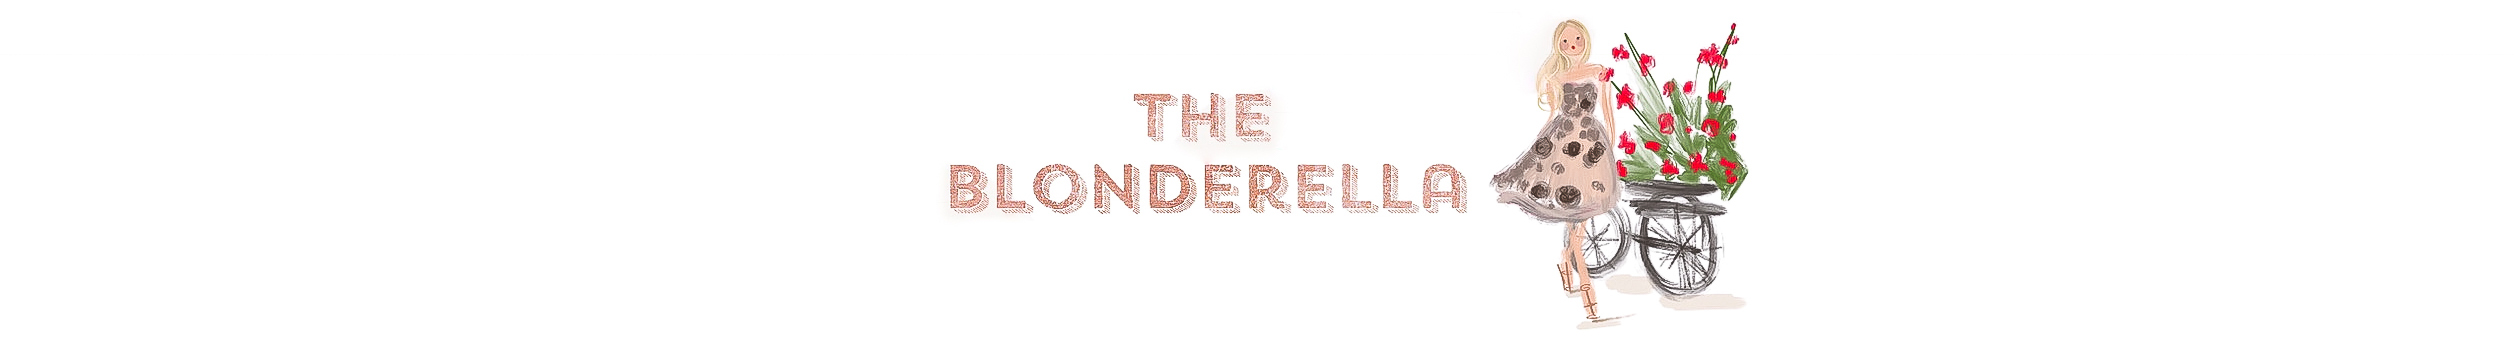 The Blonderella Logo